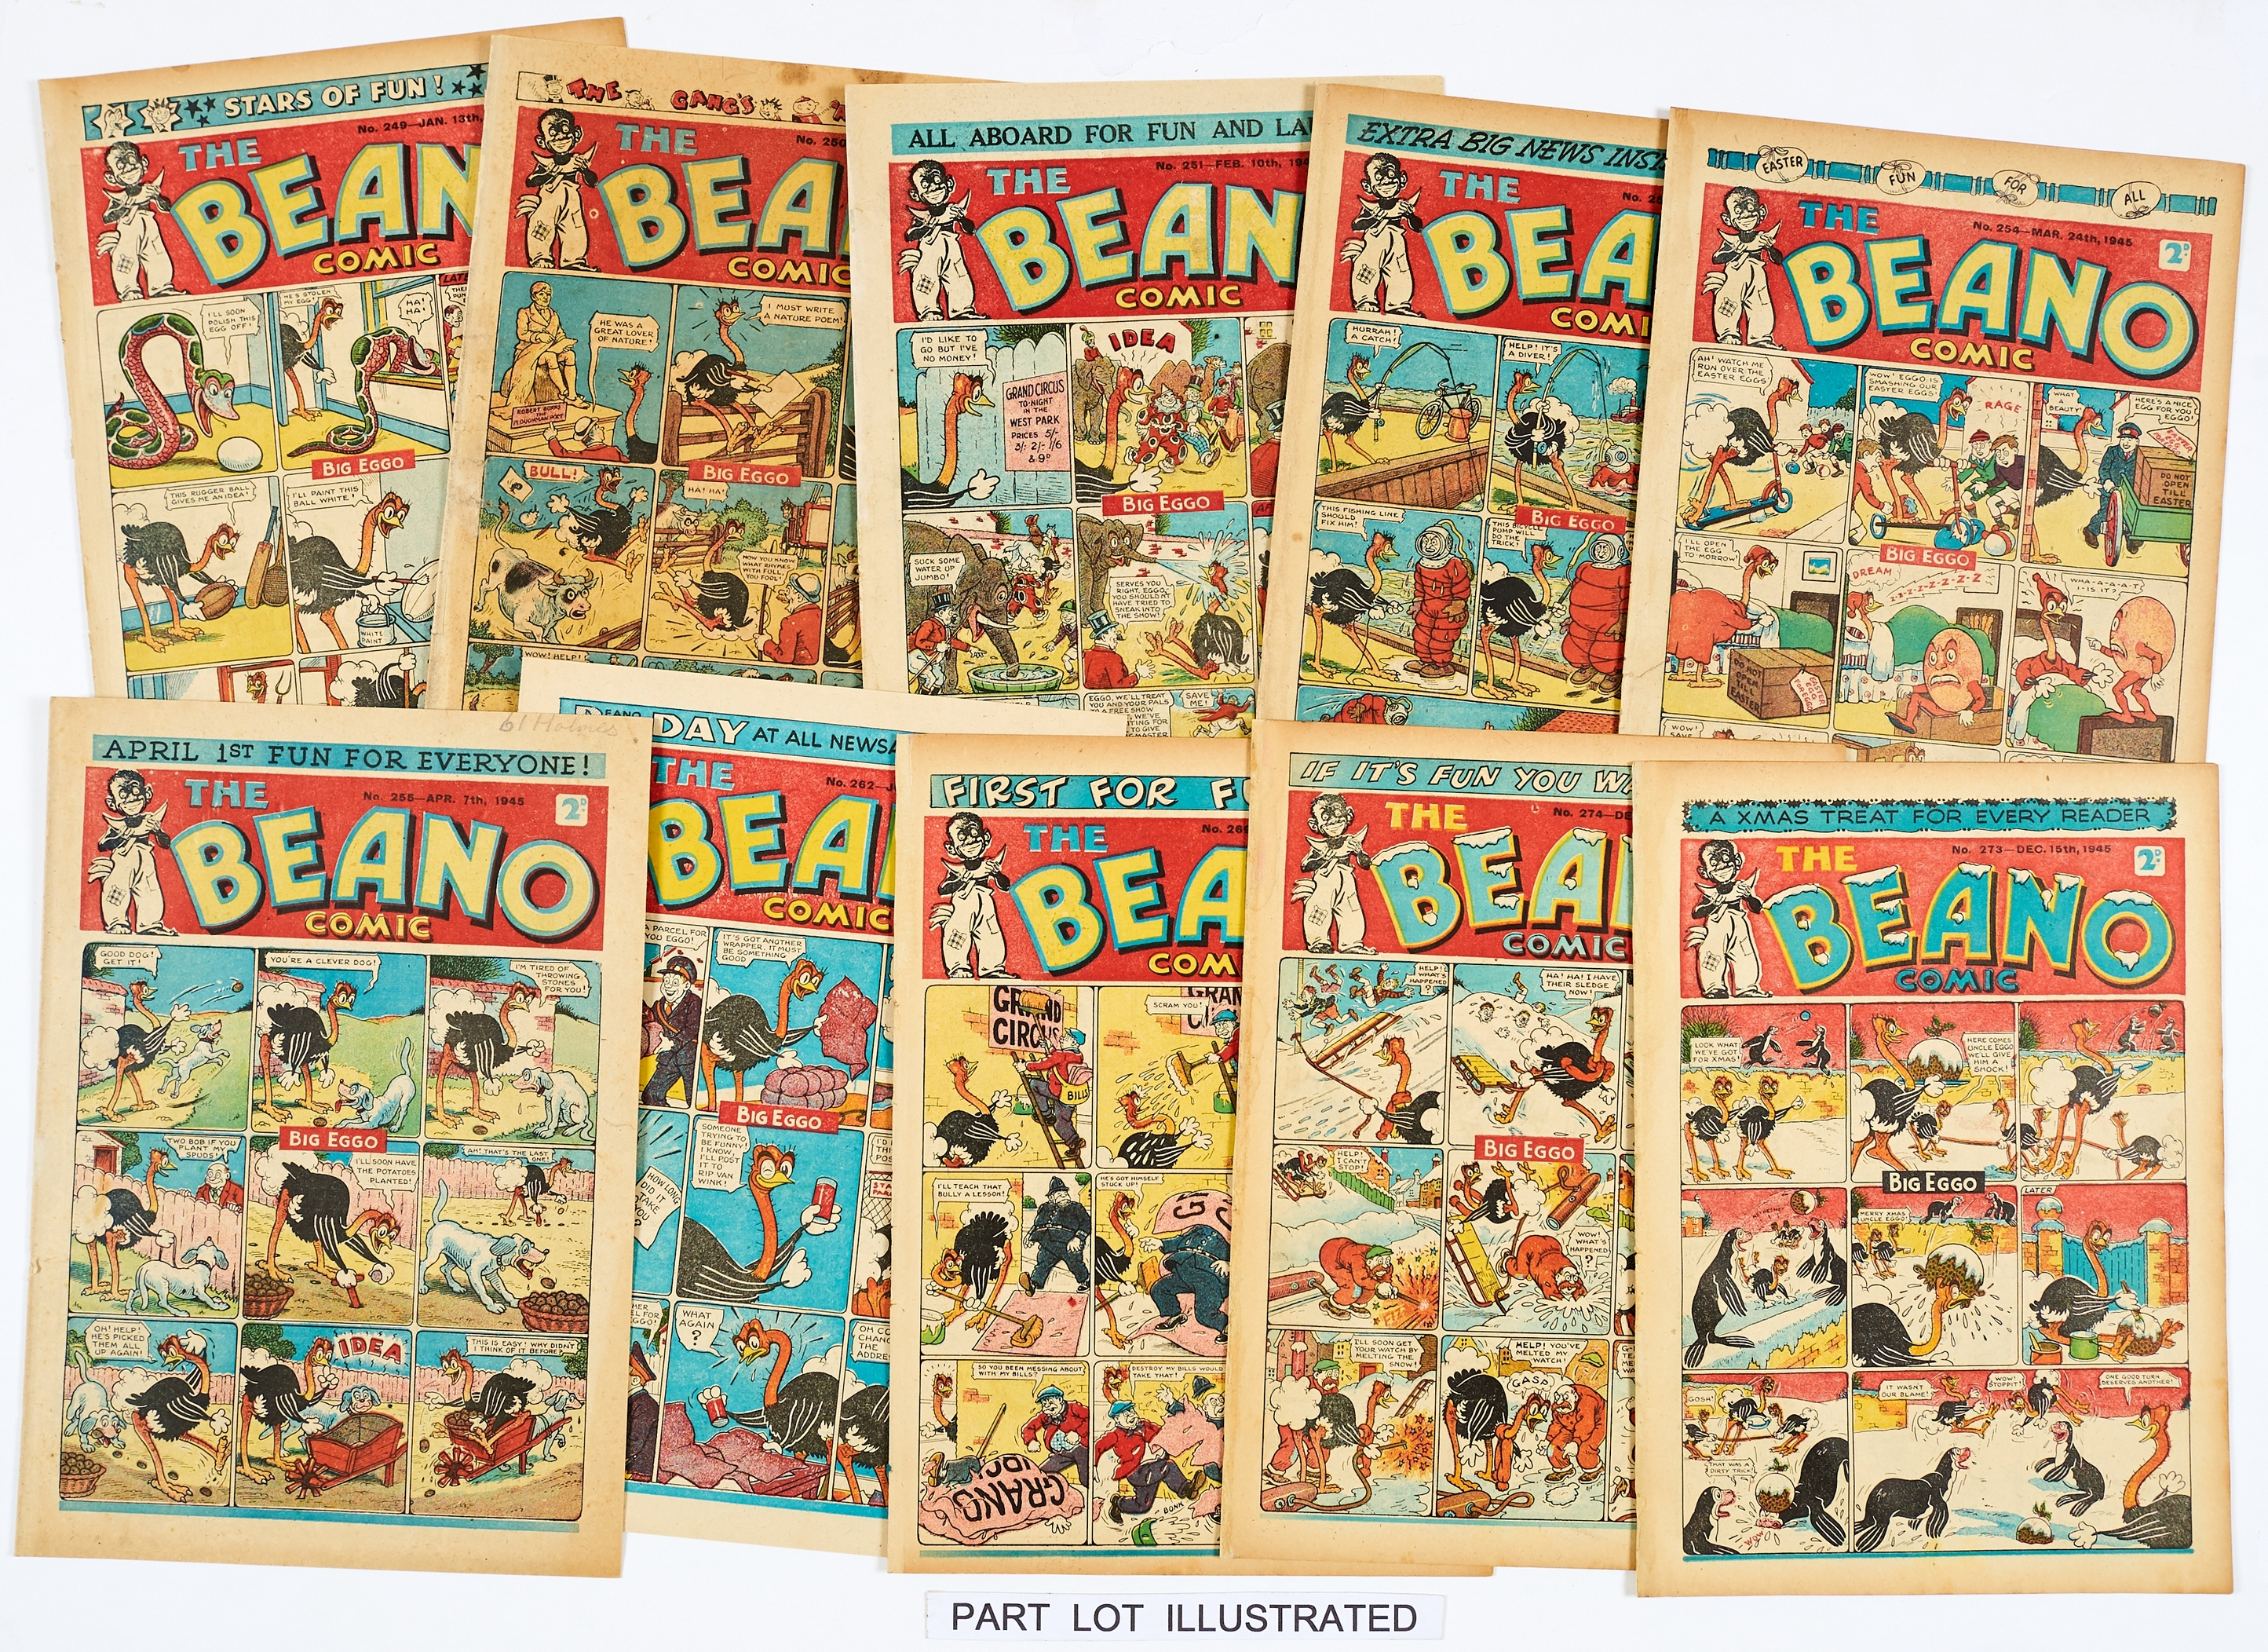 Lot 26 - Beano (1945) 249-274. Complete year of propaganda war isues. All copies retrieved from bound